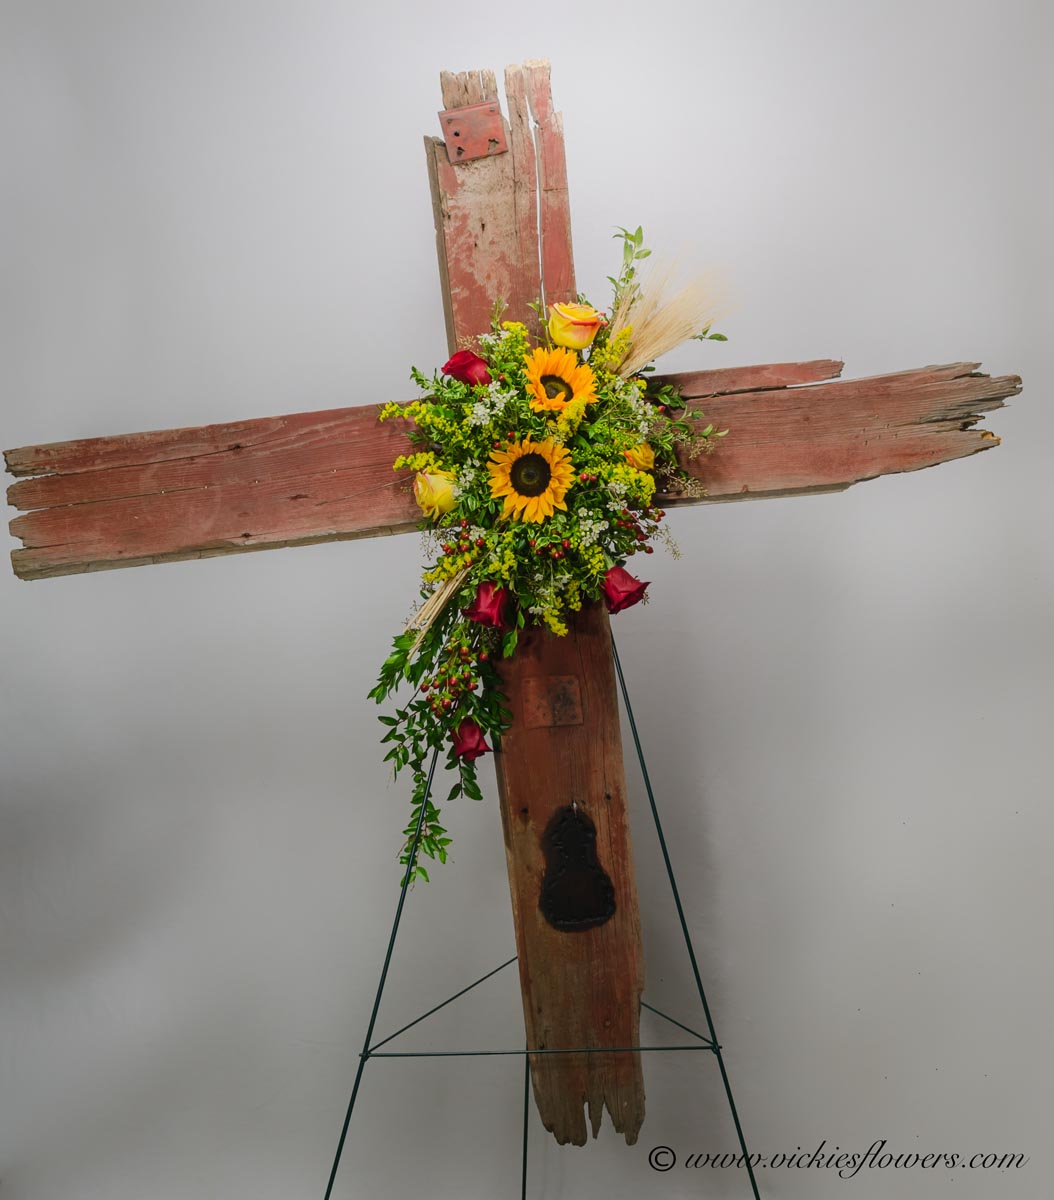 Funeral crosses standing sprays vickies flowers brighton co standing funeral spray 010 150 plus tax and delivery rugged barn wood funeral cross with wild flowers flowers include large sunflowers wheat grass izmirmasajfo